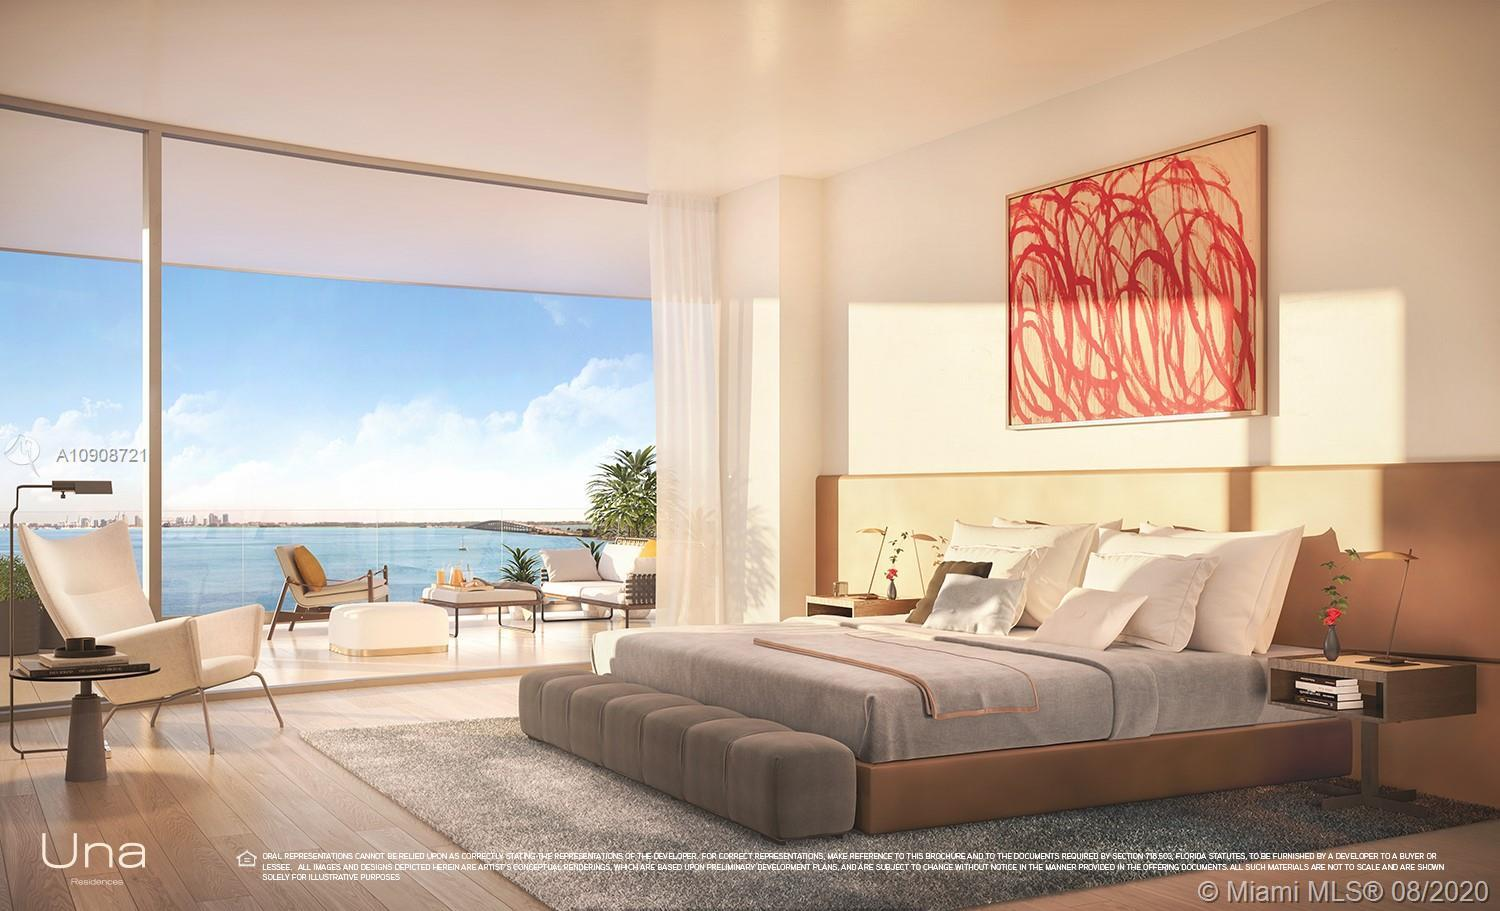 This 5 bedroom,6.5 bathroom residence has 270 degrees views of Biscayne Bay,Brickell & Coconut grove